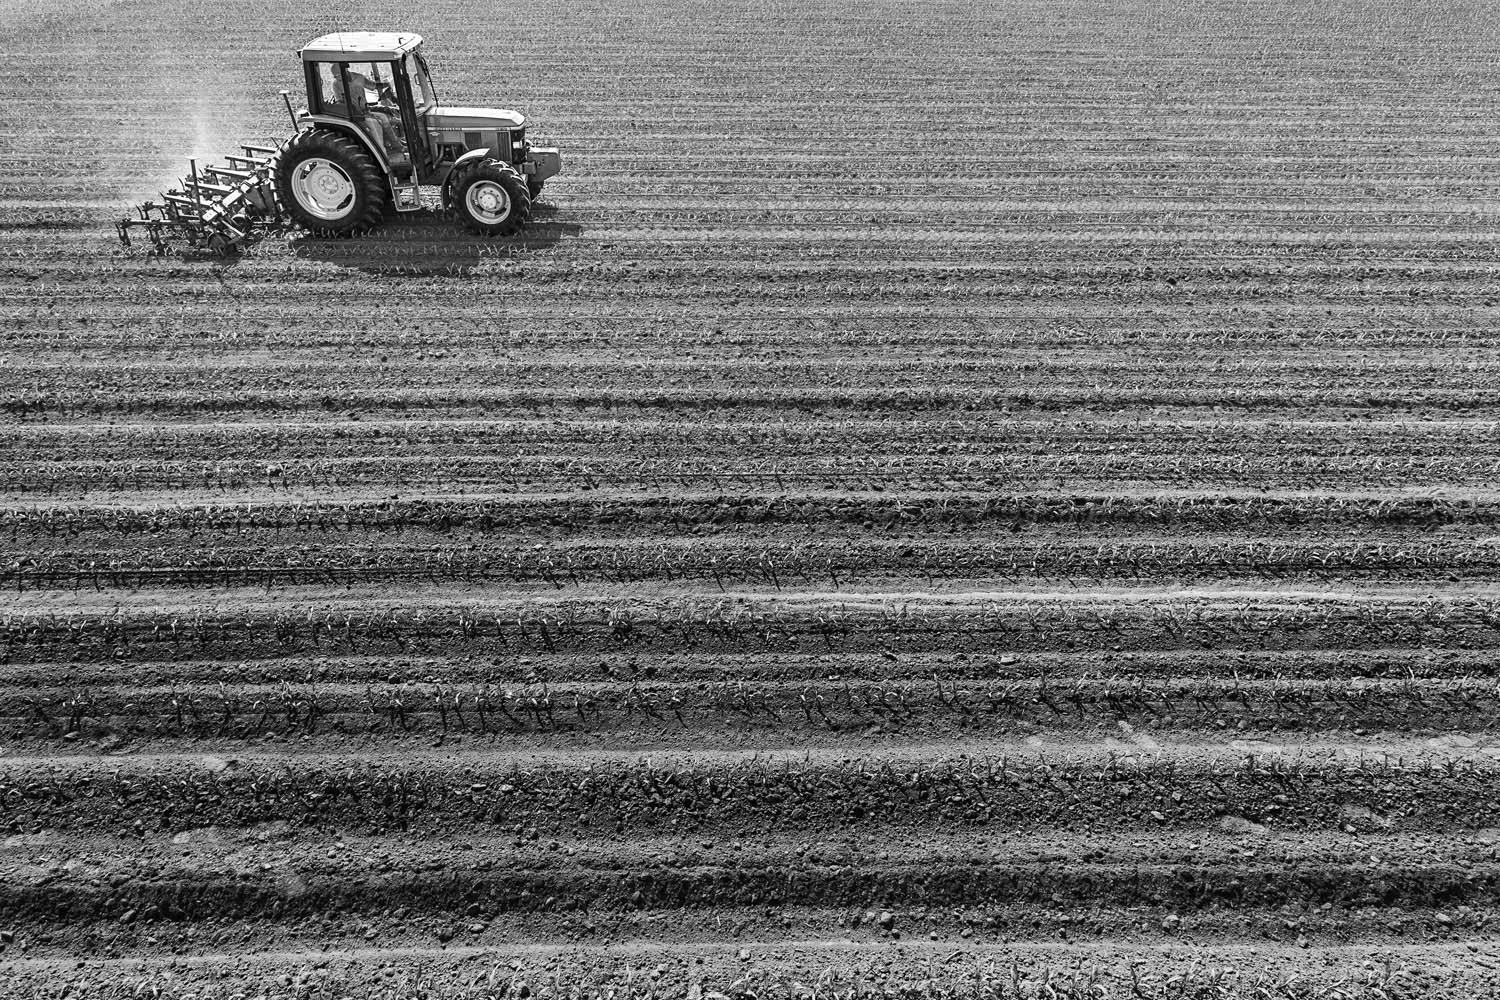 Tractor while farming.